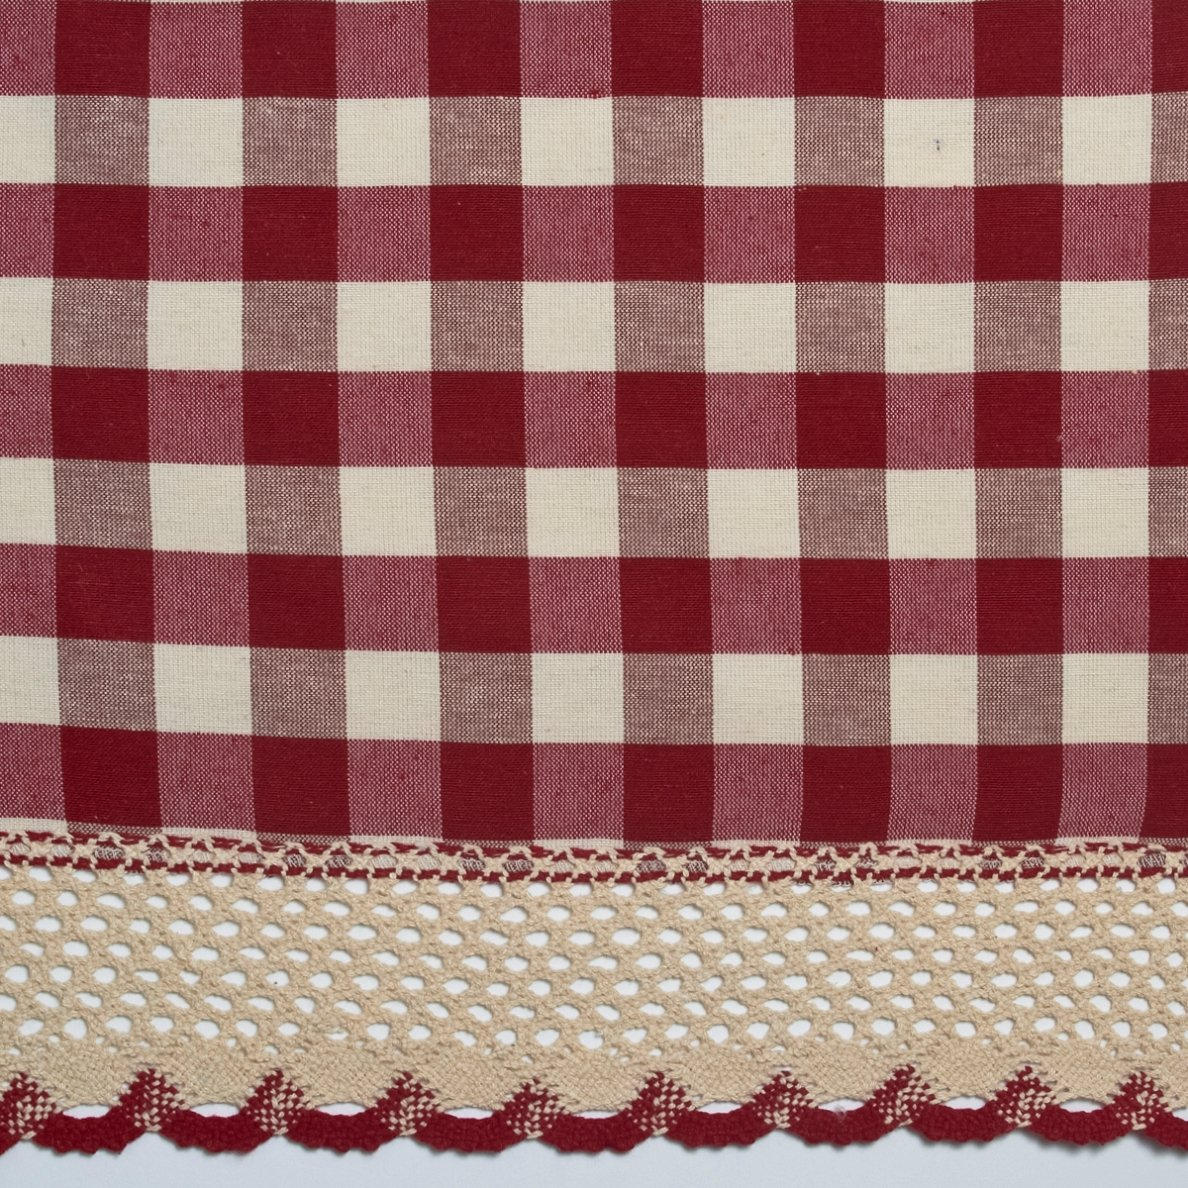 Red gingham curtains - Amazon Com Achim Home Furnishings Buffalo Check Curtain Panel 42 Inch By 84 Inch Burgundy Home Kitchen